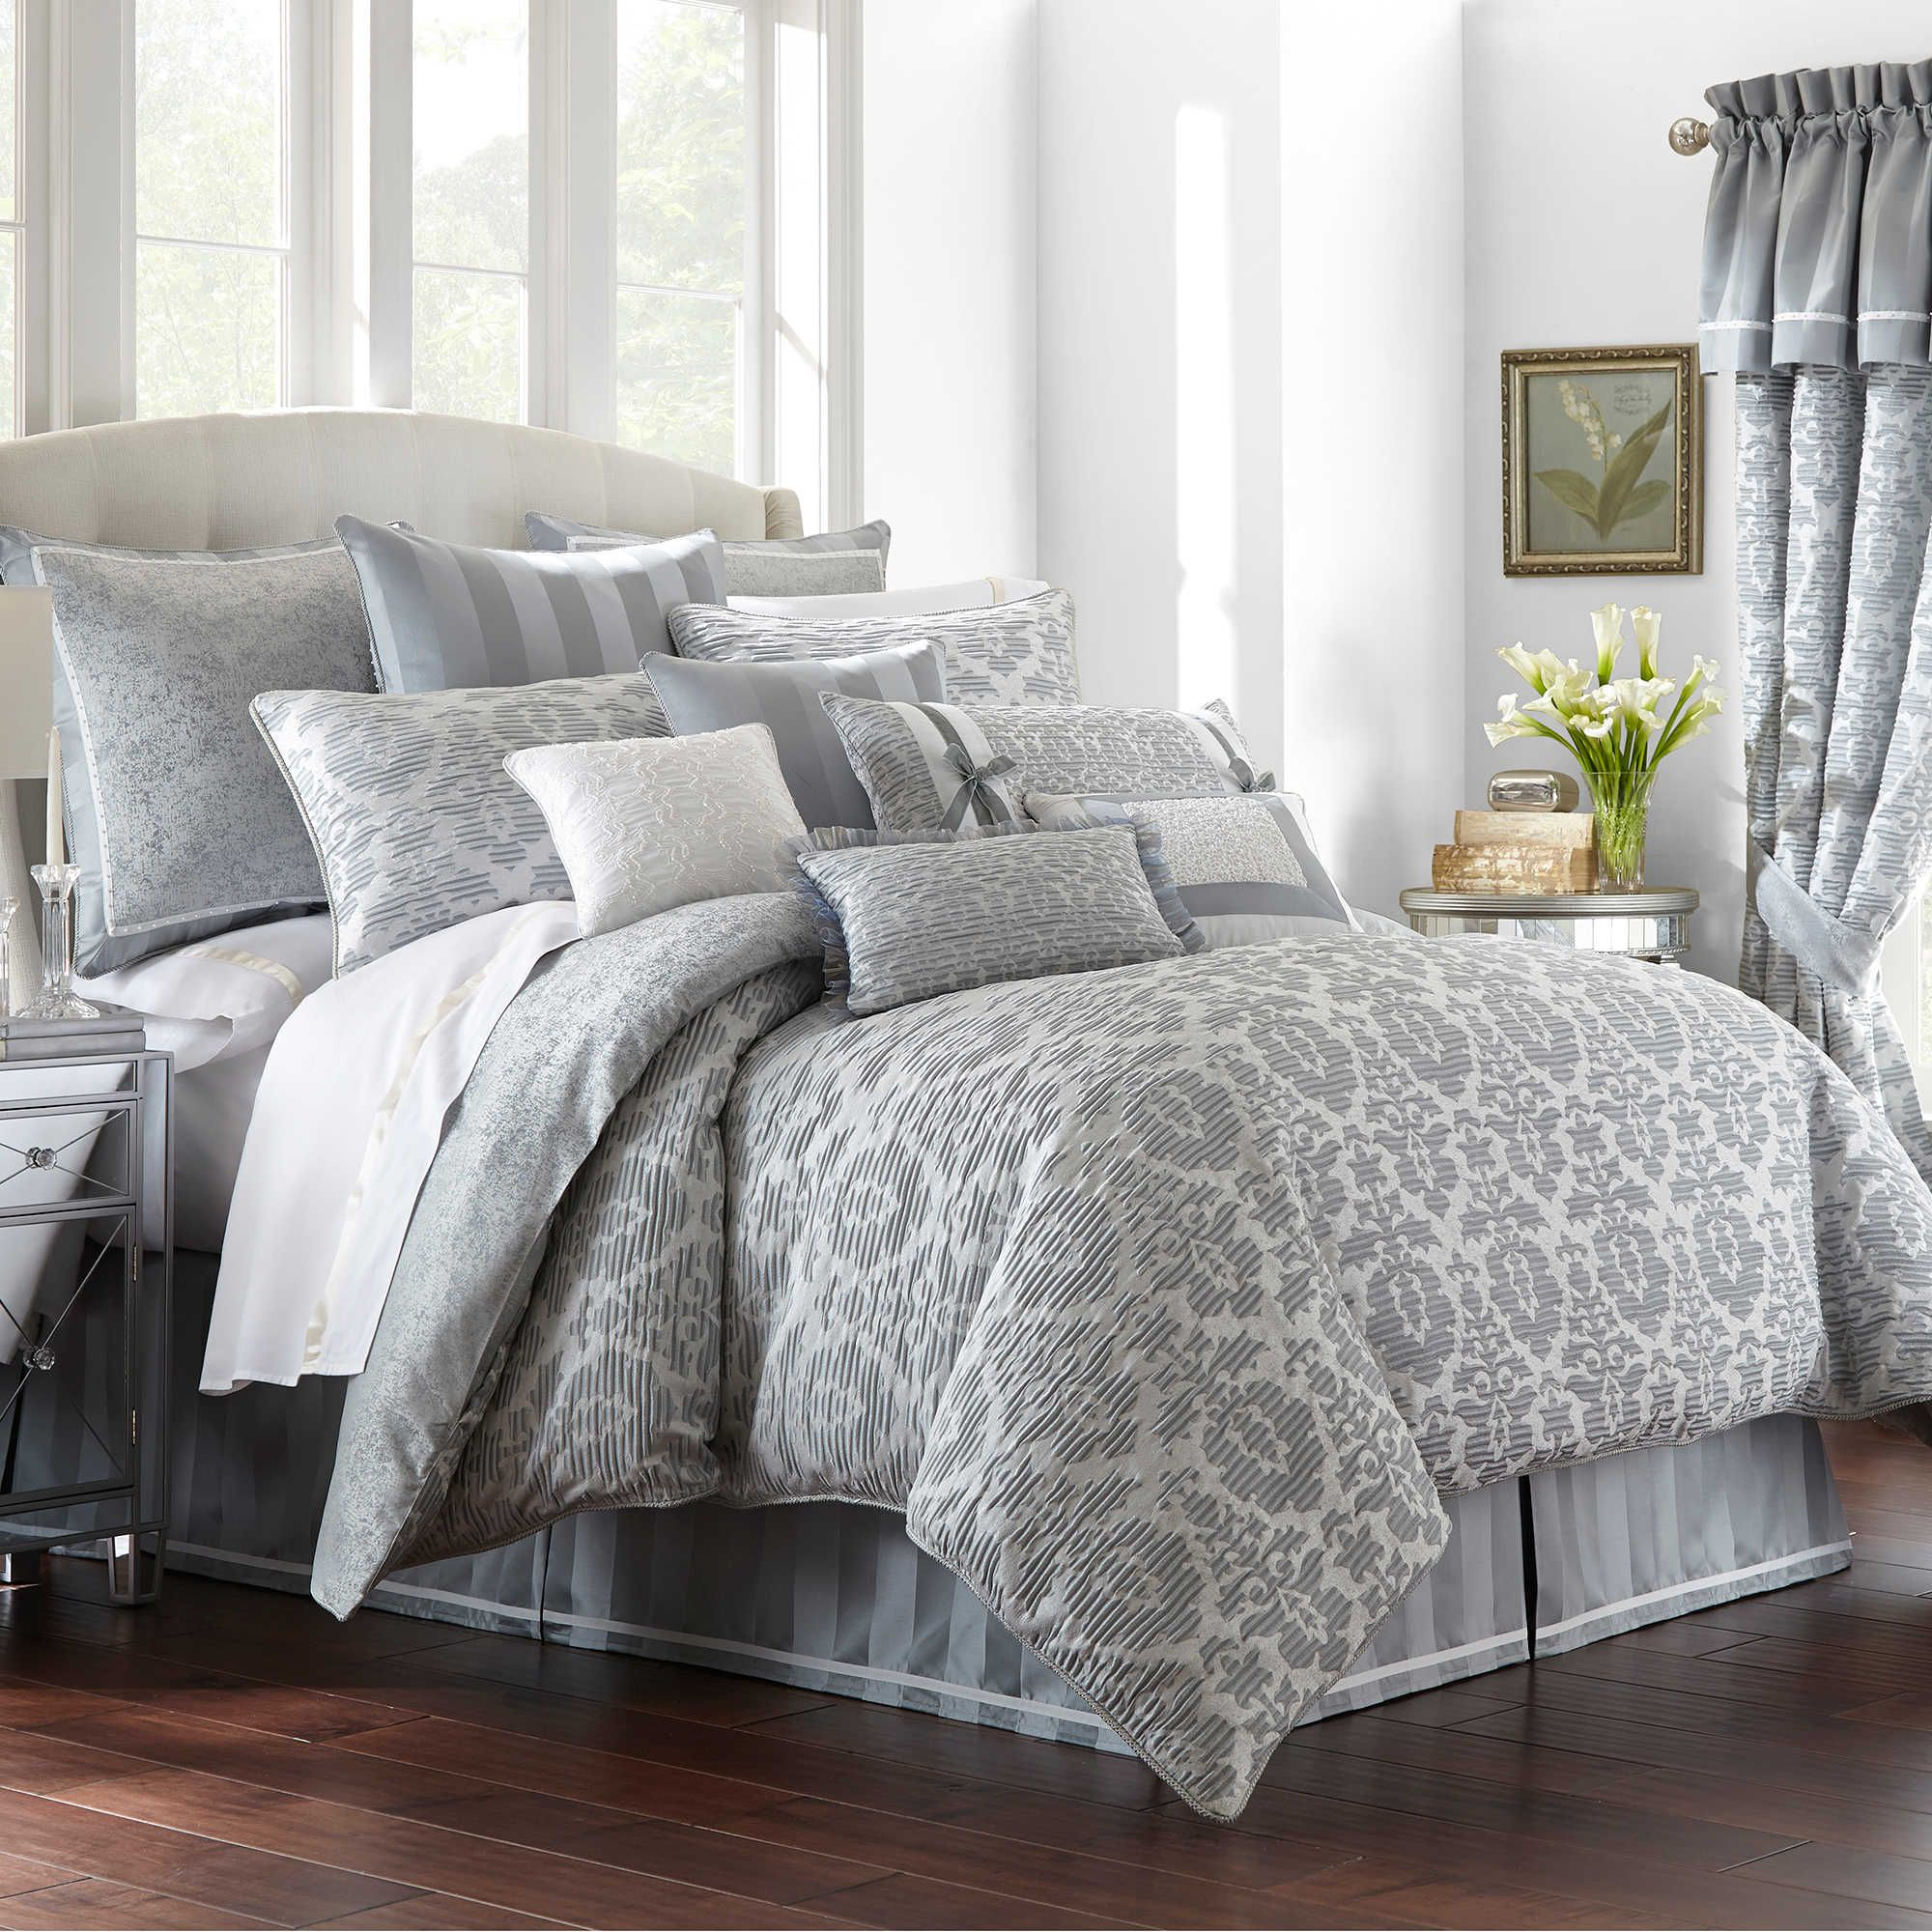 fabulous bedroom bed size large waterford comferter sets bedding set comforter king for and with